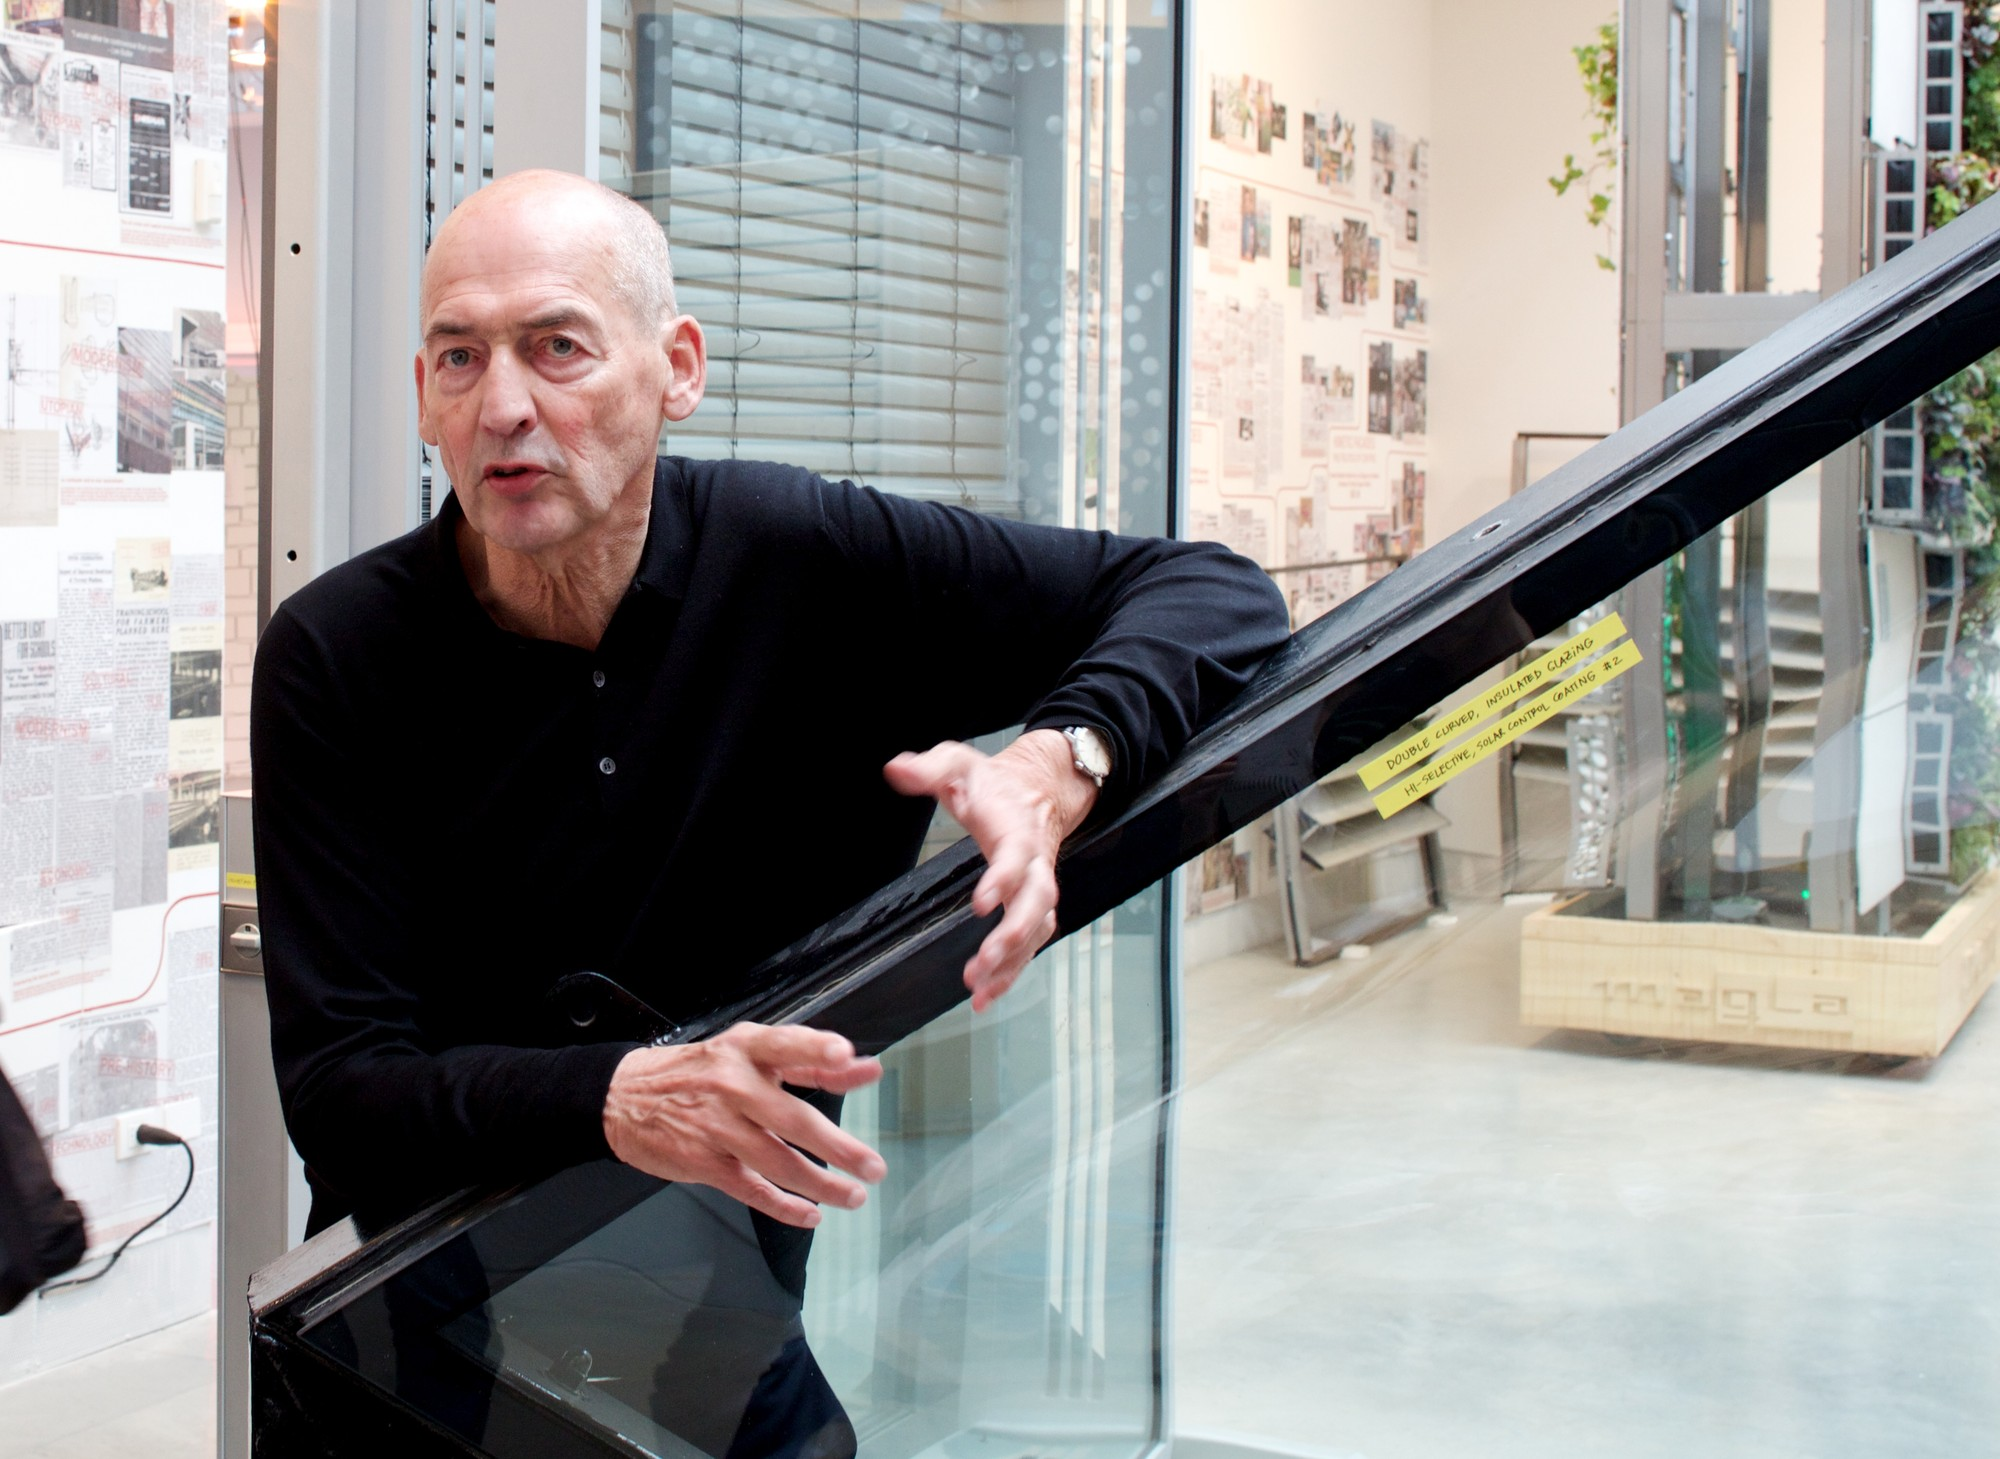 ArchDaily at the 2014 Venice Biennale, Rem Koolhaas at the preview of the Elements exhibit © ArchDaily